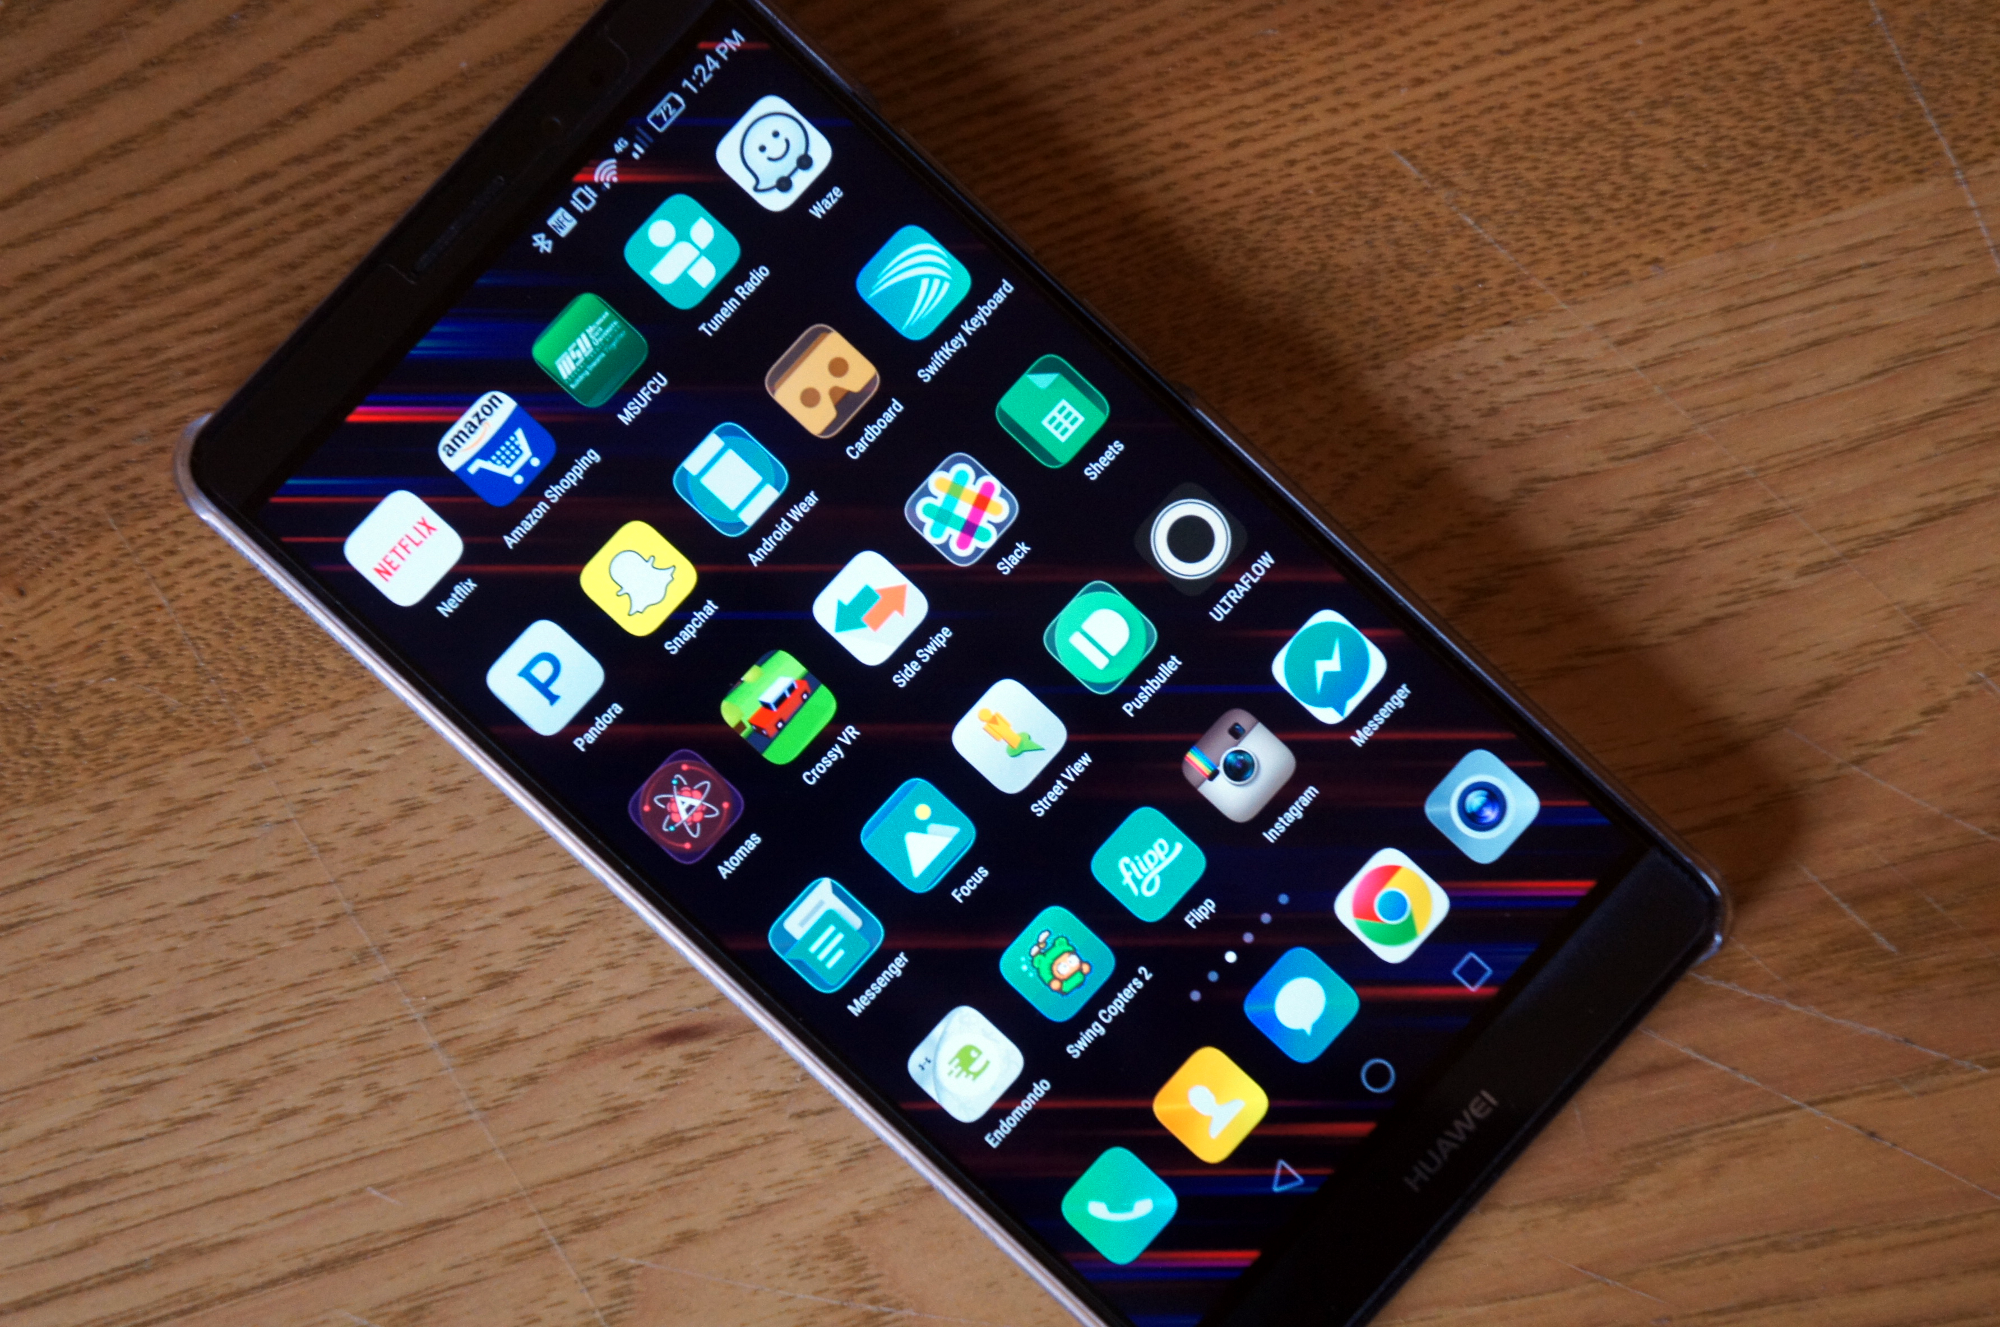 40+ Huawei Mate 8 Tips & Tricks